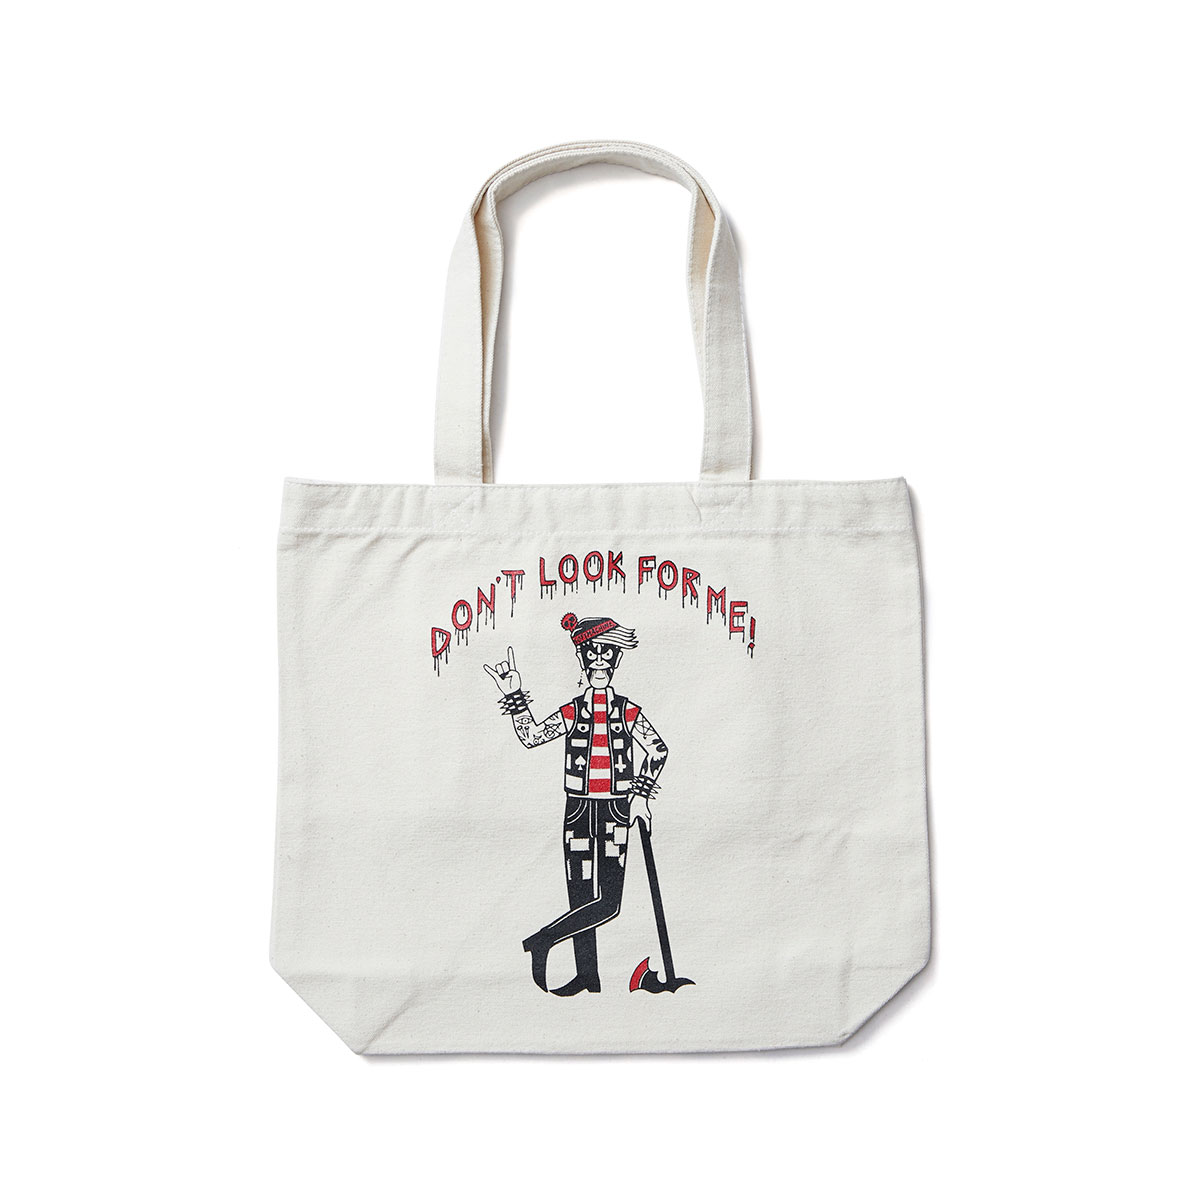 WORRY TOTE